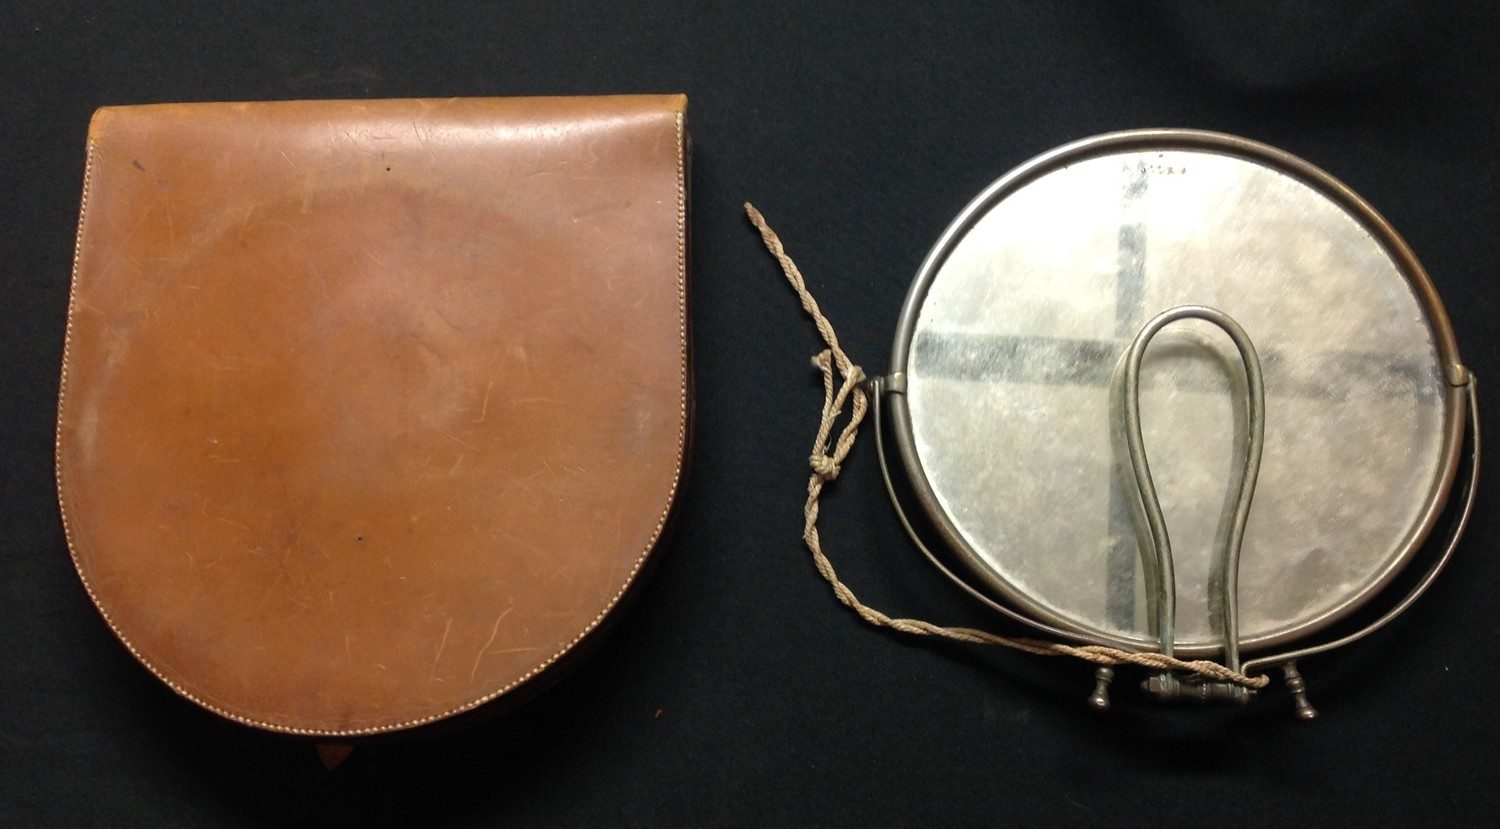 WW1 British Officers Private Purchase Campaign Shaving Mirror in leather case. Named in ink to the - Image 2 of 3